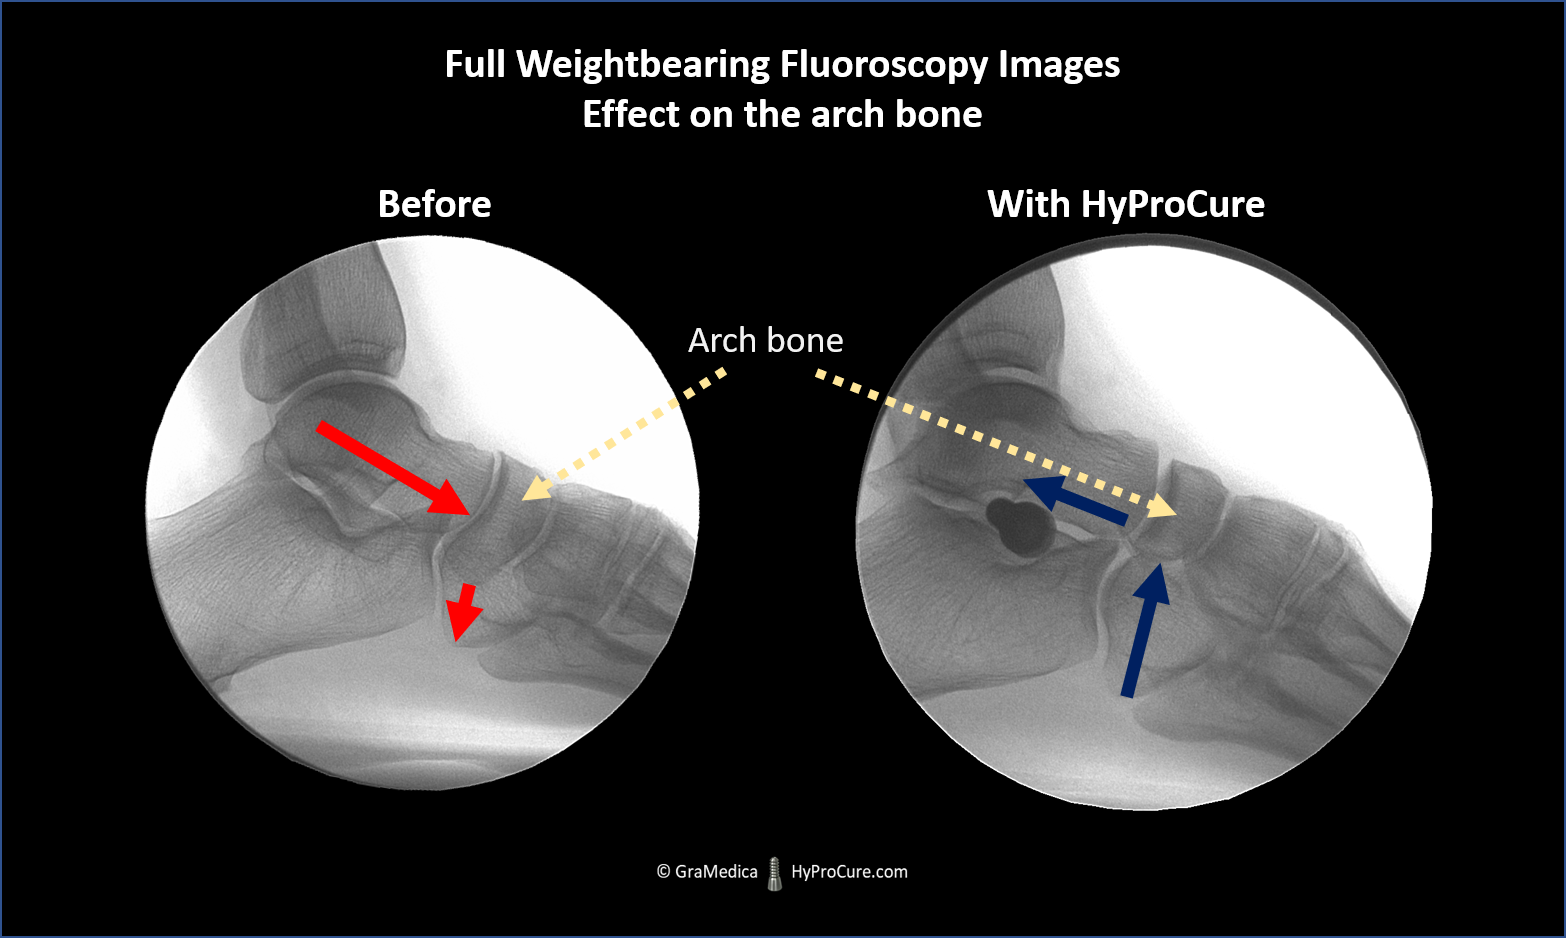 fluoroscopic x-ray the ankle bone forces the arch bone down. The arch bone is restored to its normal alignment once the ankle bone is realigned and stabilized with HyProCure.